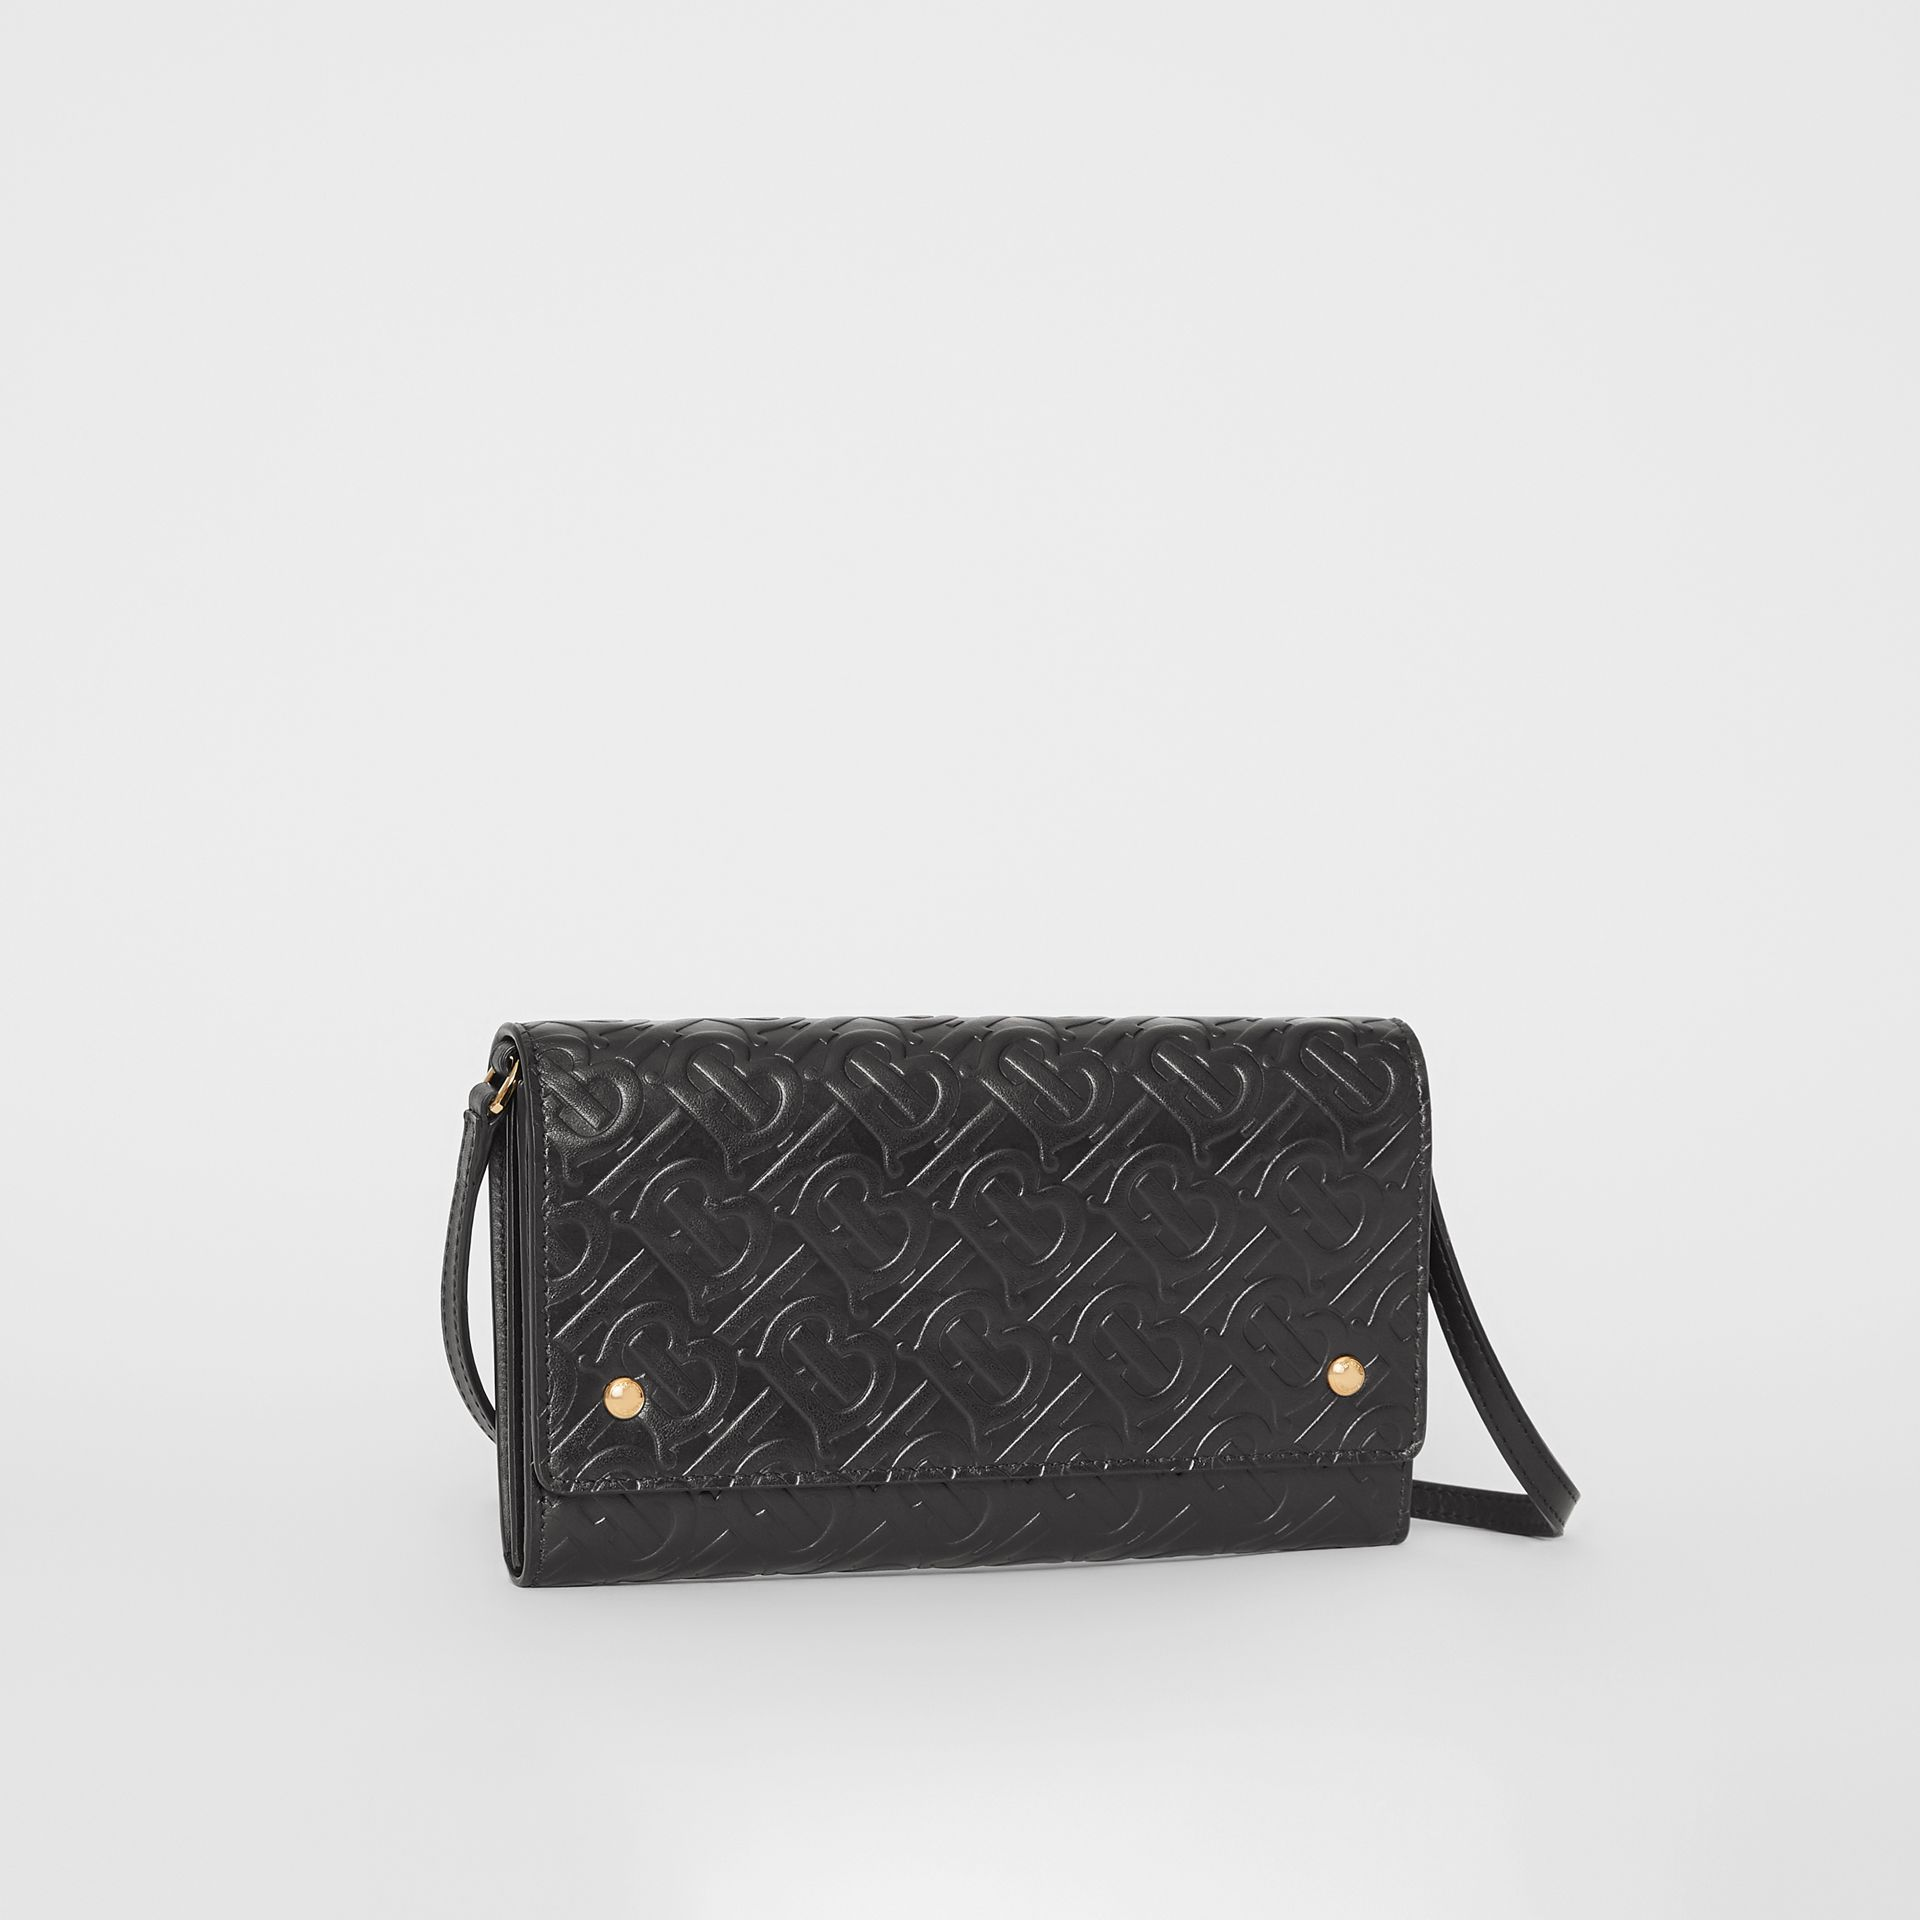 Monogram Leather Wallet with Detachable Strap in Black - Women | Burberry United States - gallery image 6